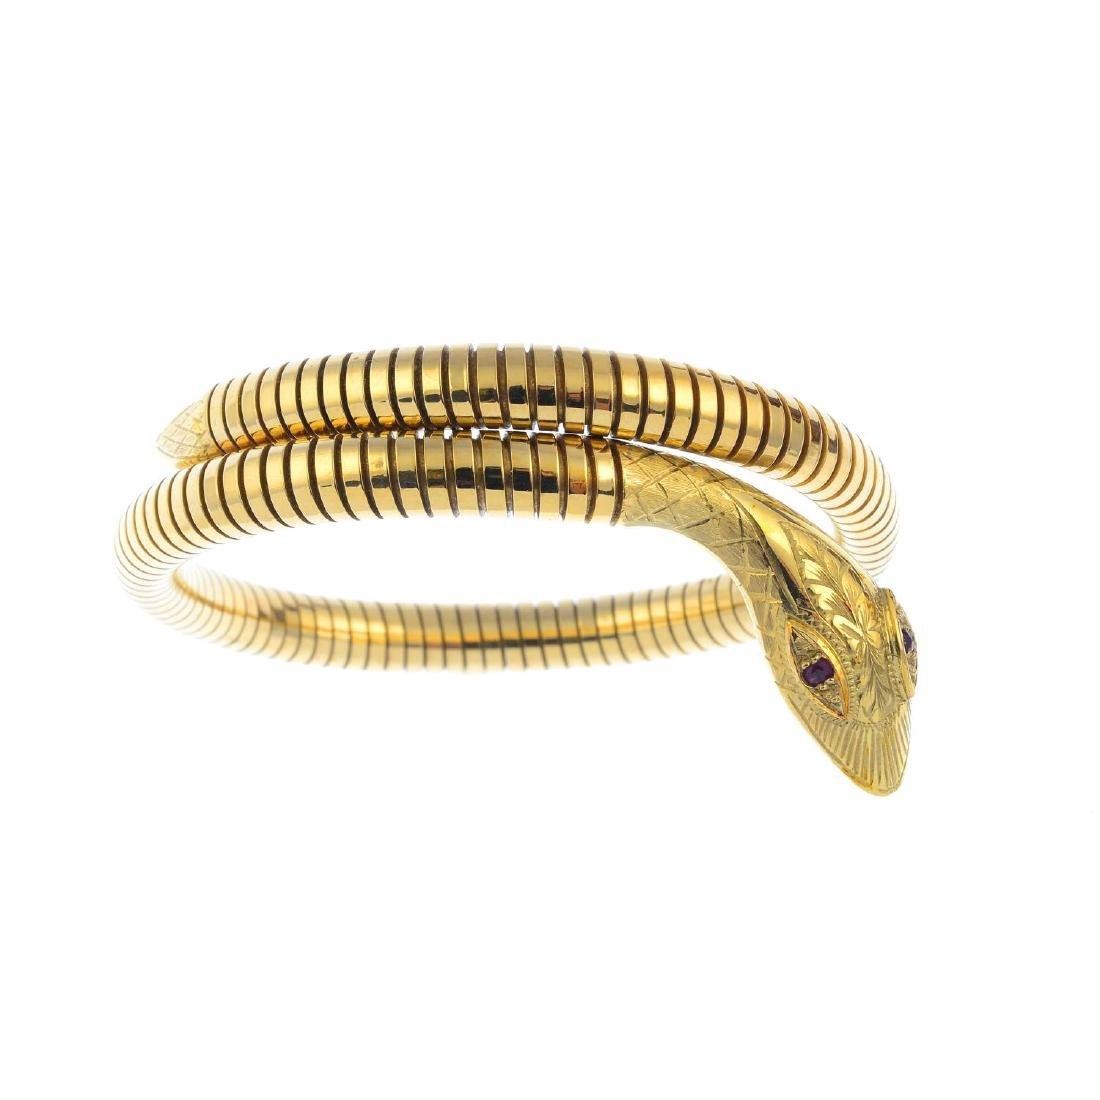 A 9ct gold flexible snake bangle. Designed as a coiled